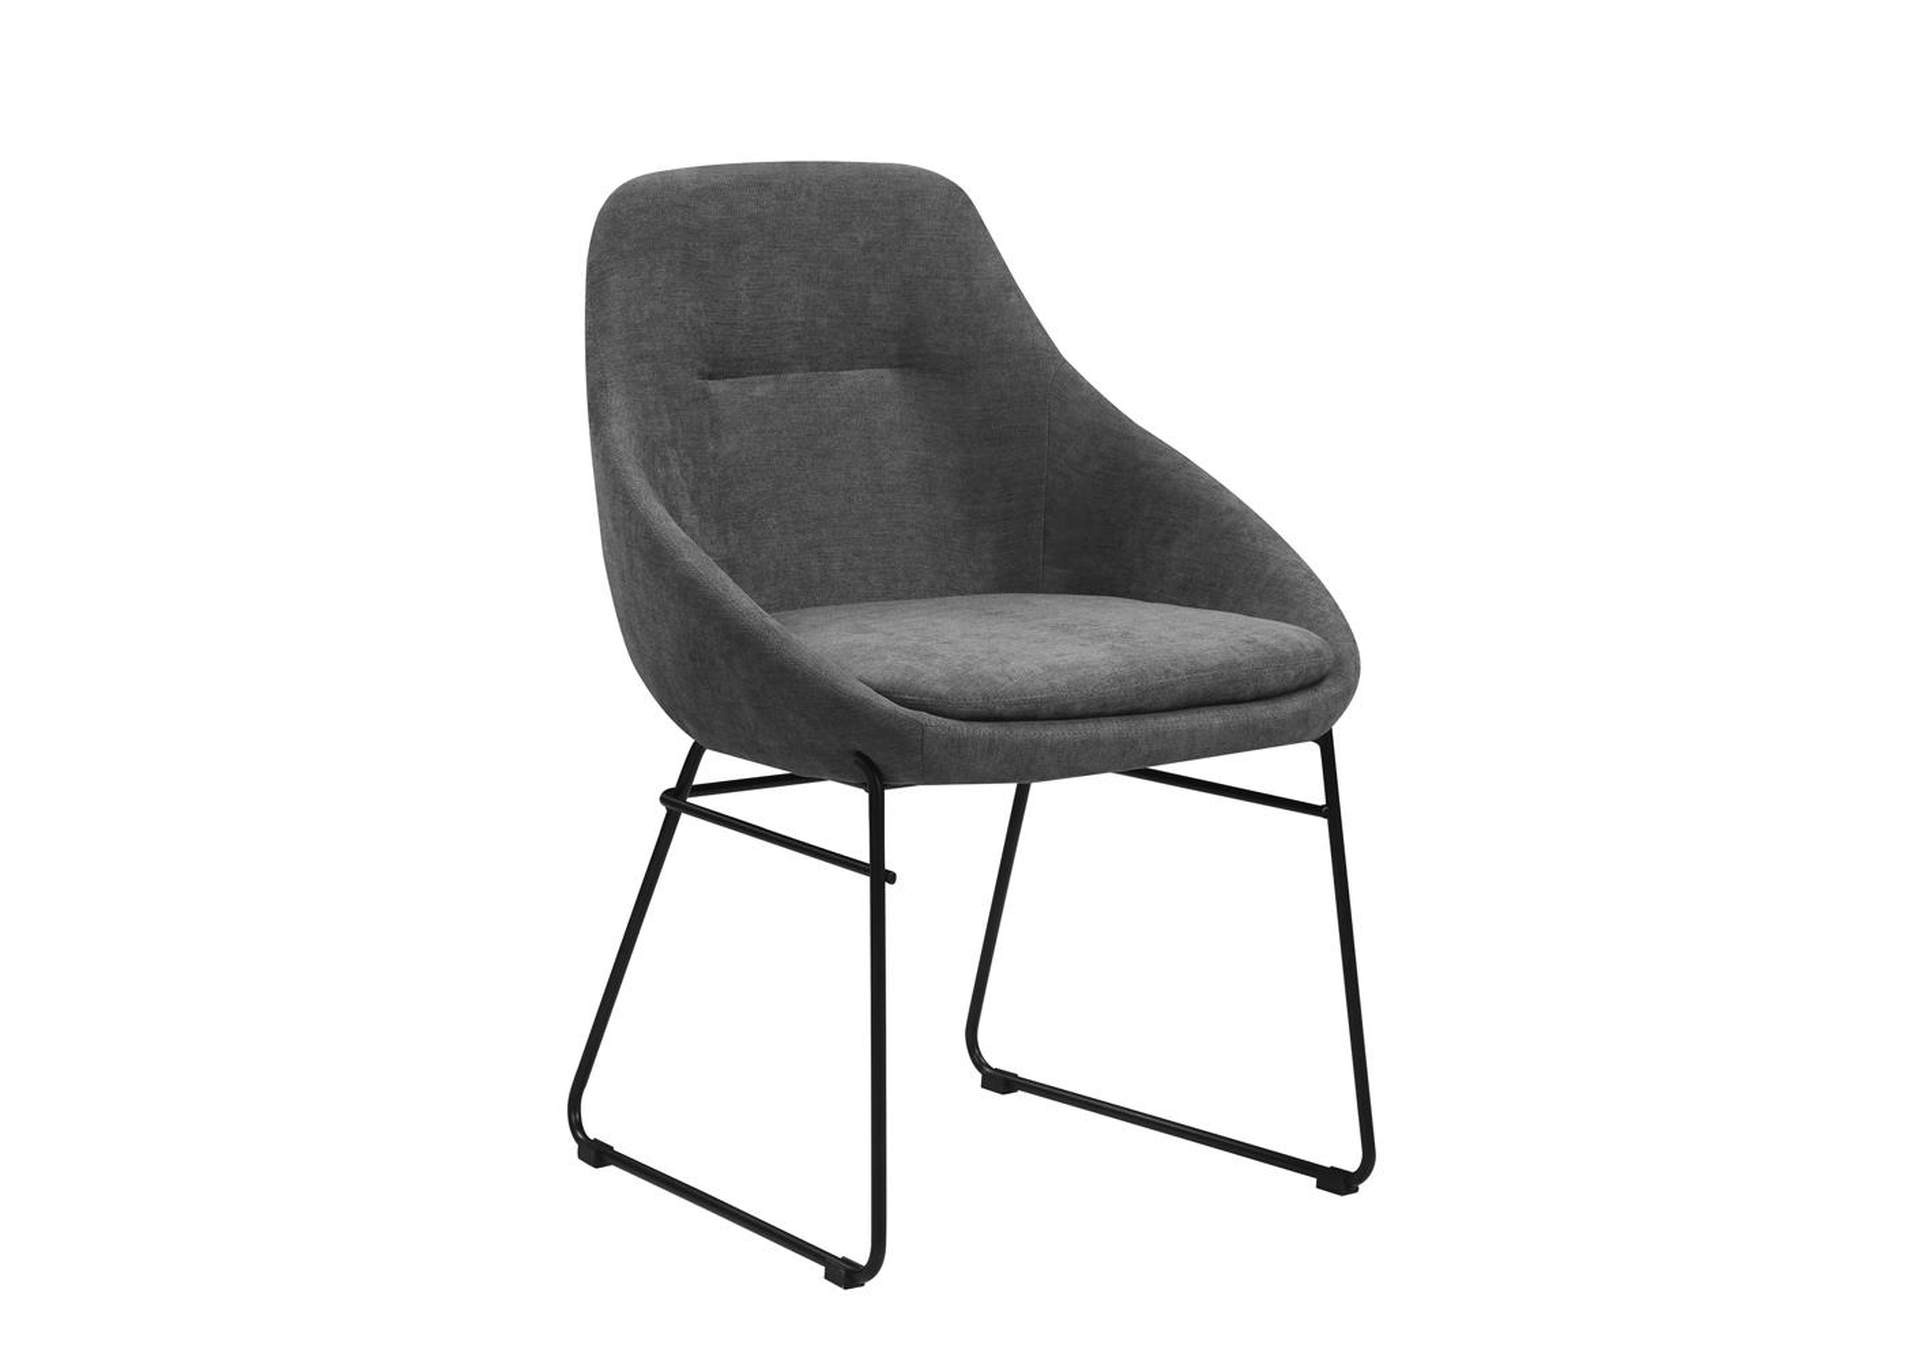 Grey Upholstered Dining Chair,Coaster Furniture